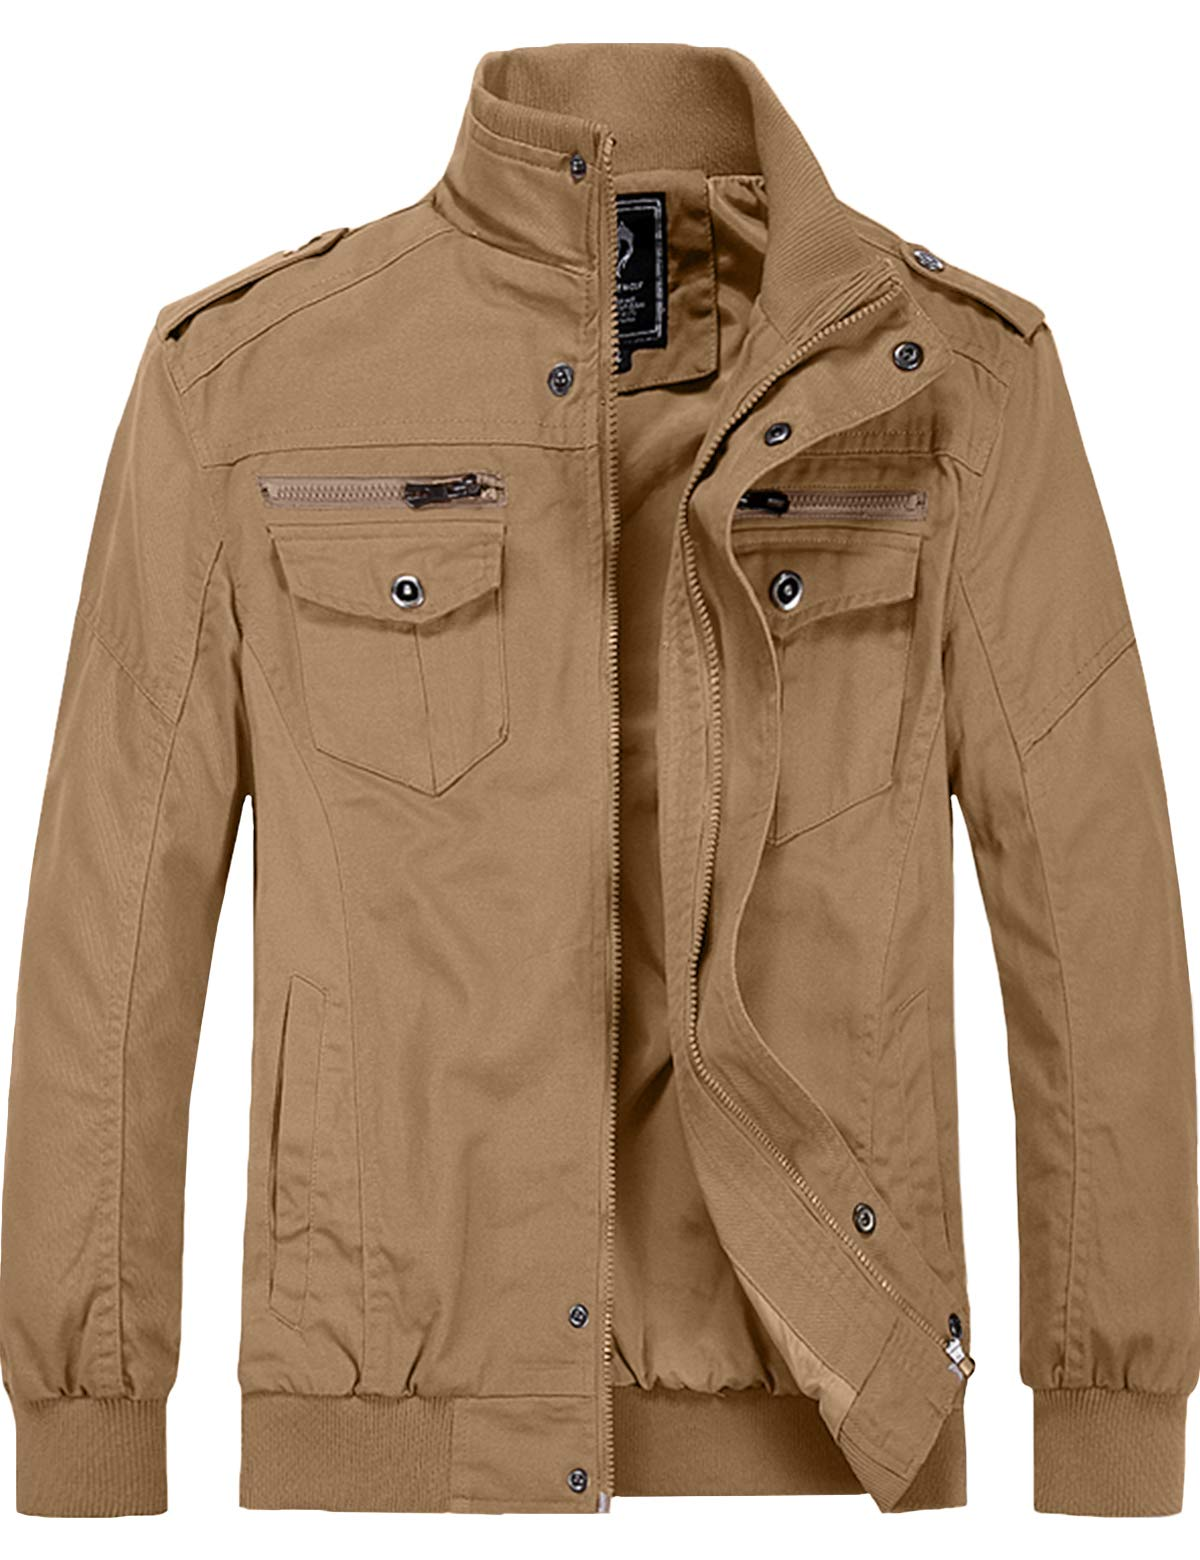 YXP Men's Casual Cotton Military Jacket Fall Lightweight Outwear Coat(Khaki,L) by YXP